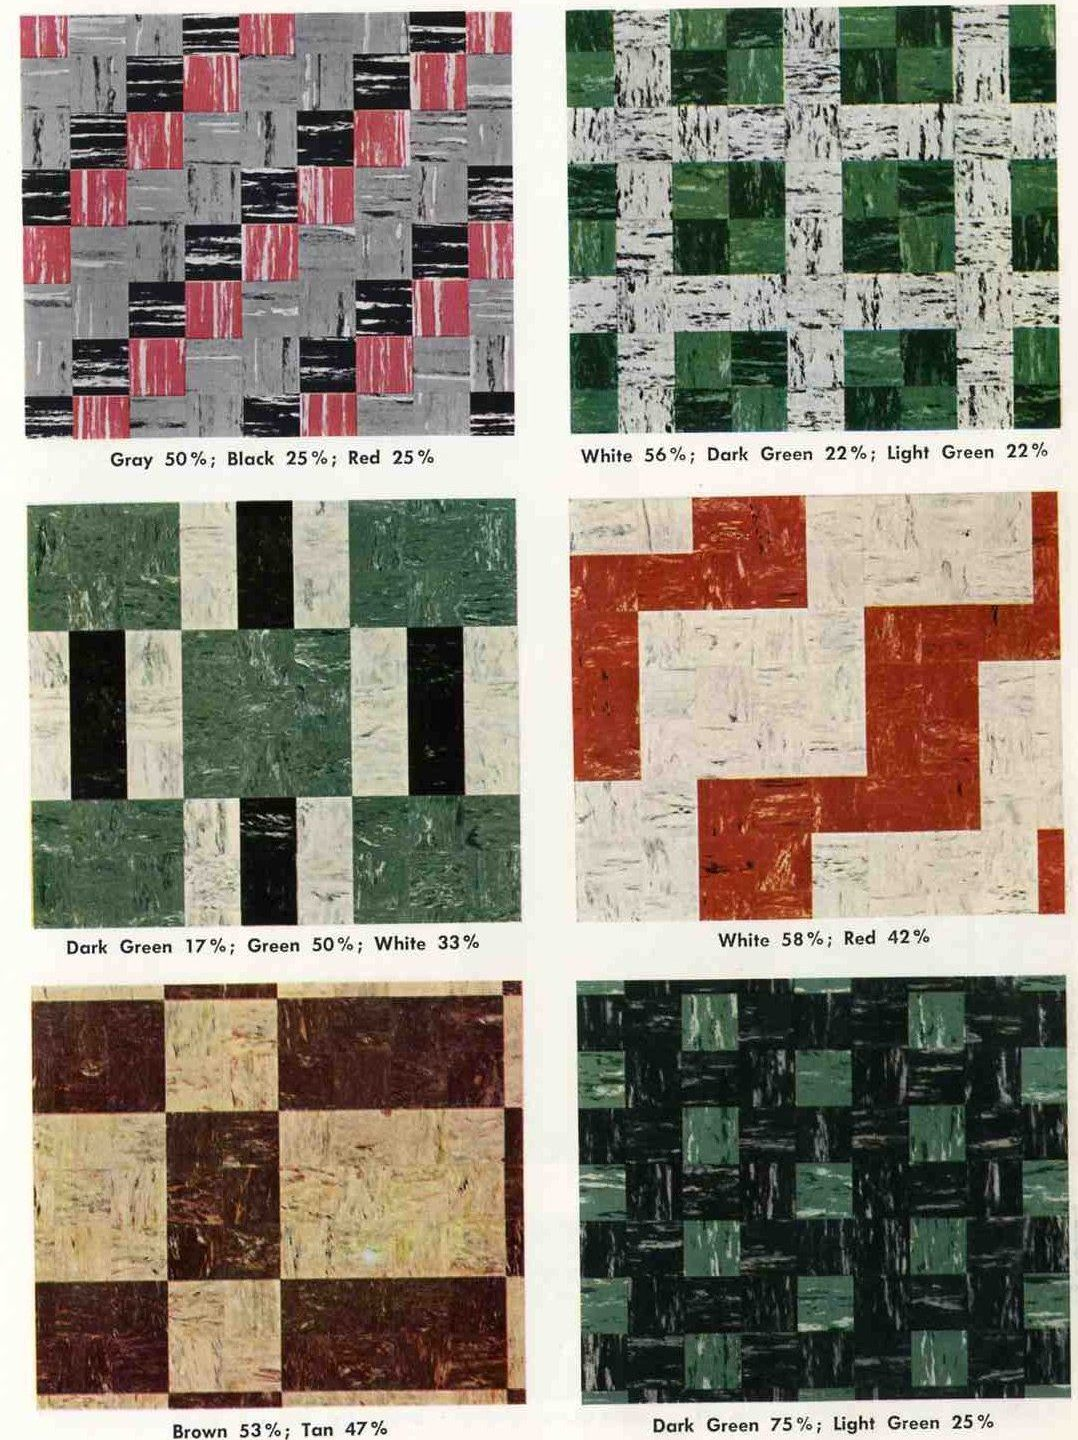 30 Patterns For Vinyl Floor Tiles From The 1950s Retro Renovation Patterned Floor Tiles Vinyl Flooring Linoleum Kitchen Floors